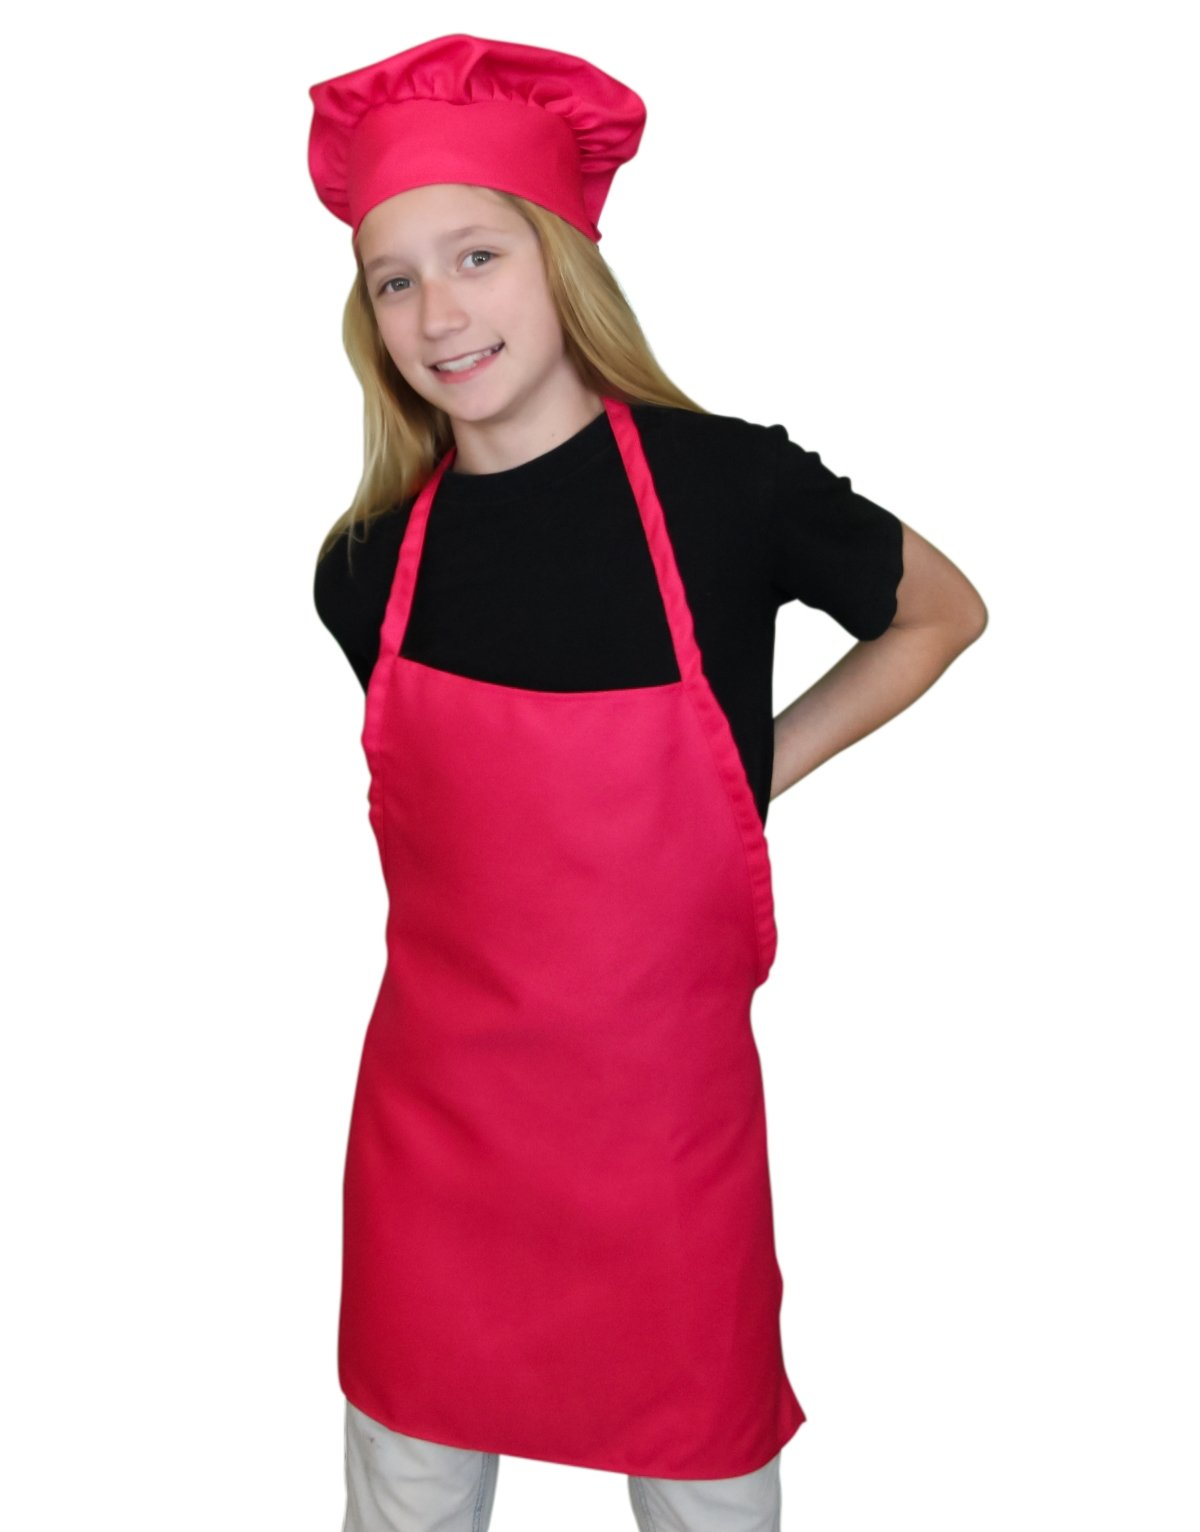 Kids Apron and Chef Hat Set. Adjustable Hat and Apron. Fits Childs Size Medium 6-12 (Pink) -Free eBook